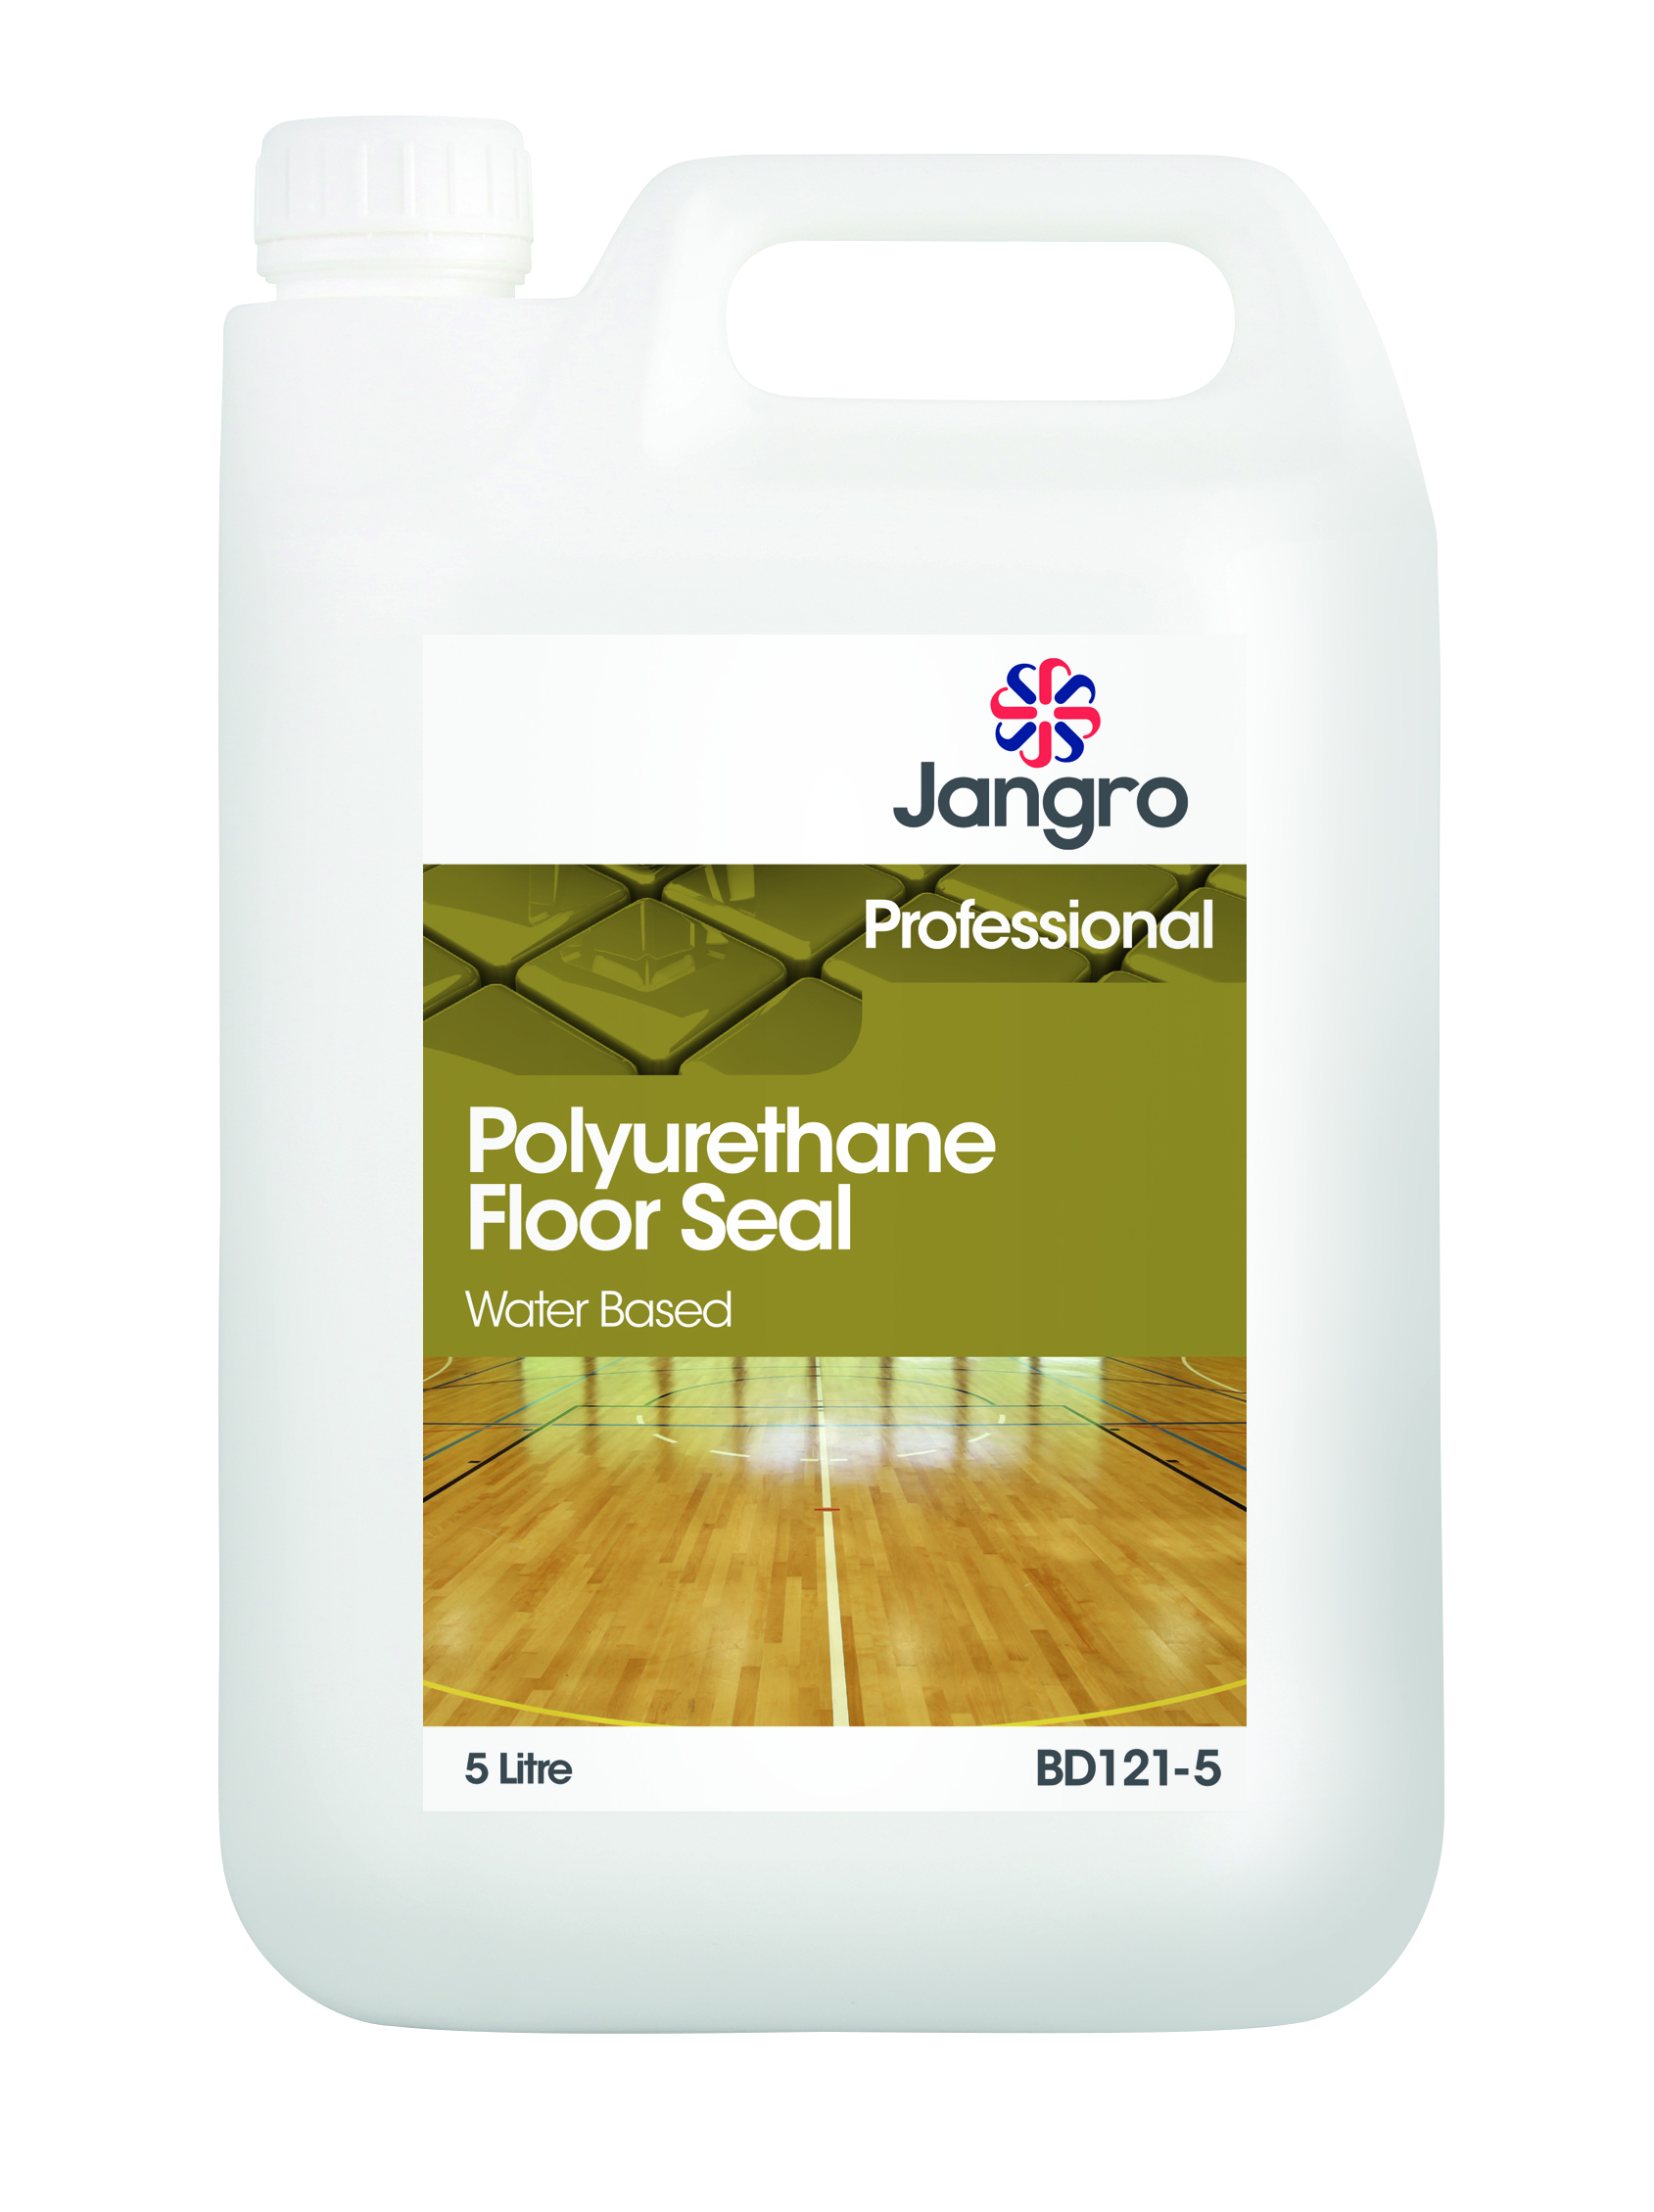 Jangro Polyurethane Floor Seal Water Based 5ltr